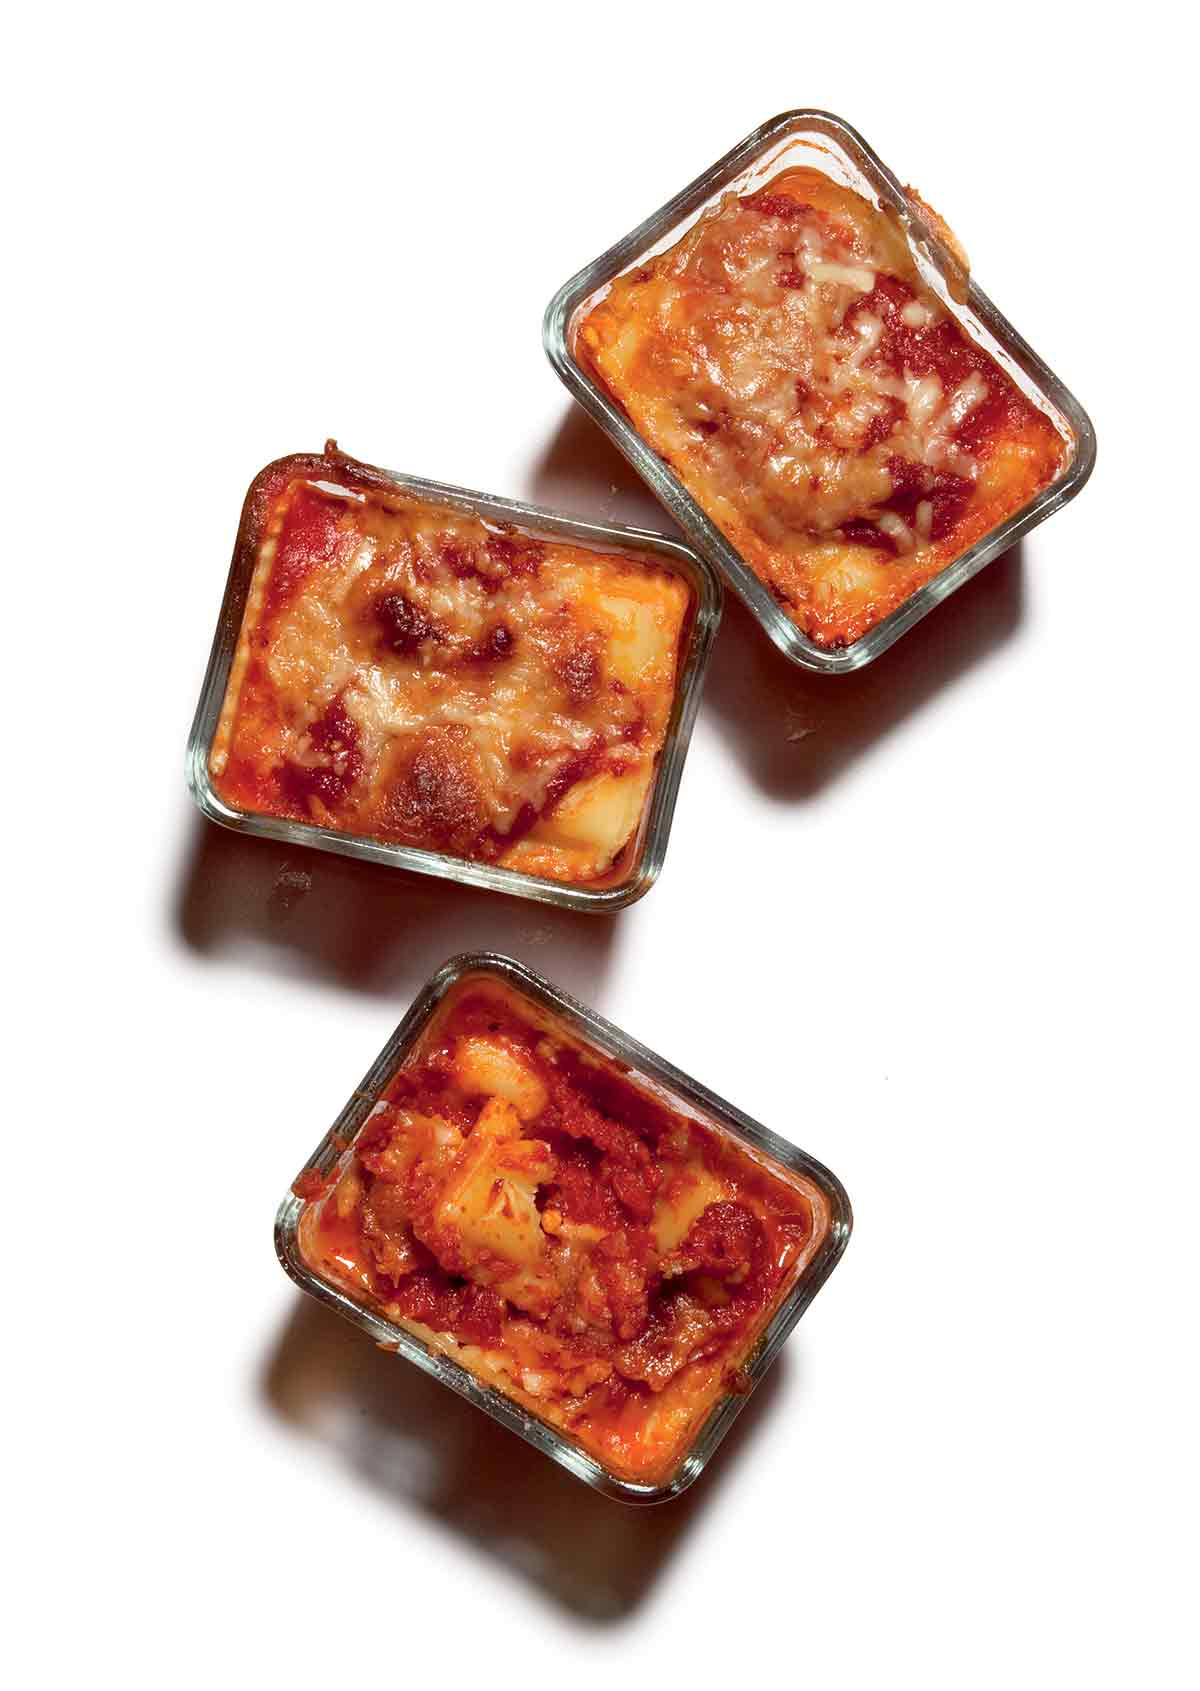 Three personal pan lasagnas in glass dishes.